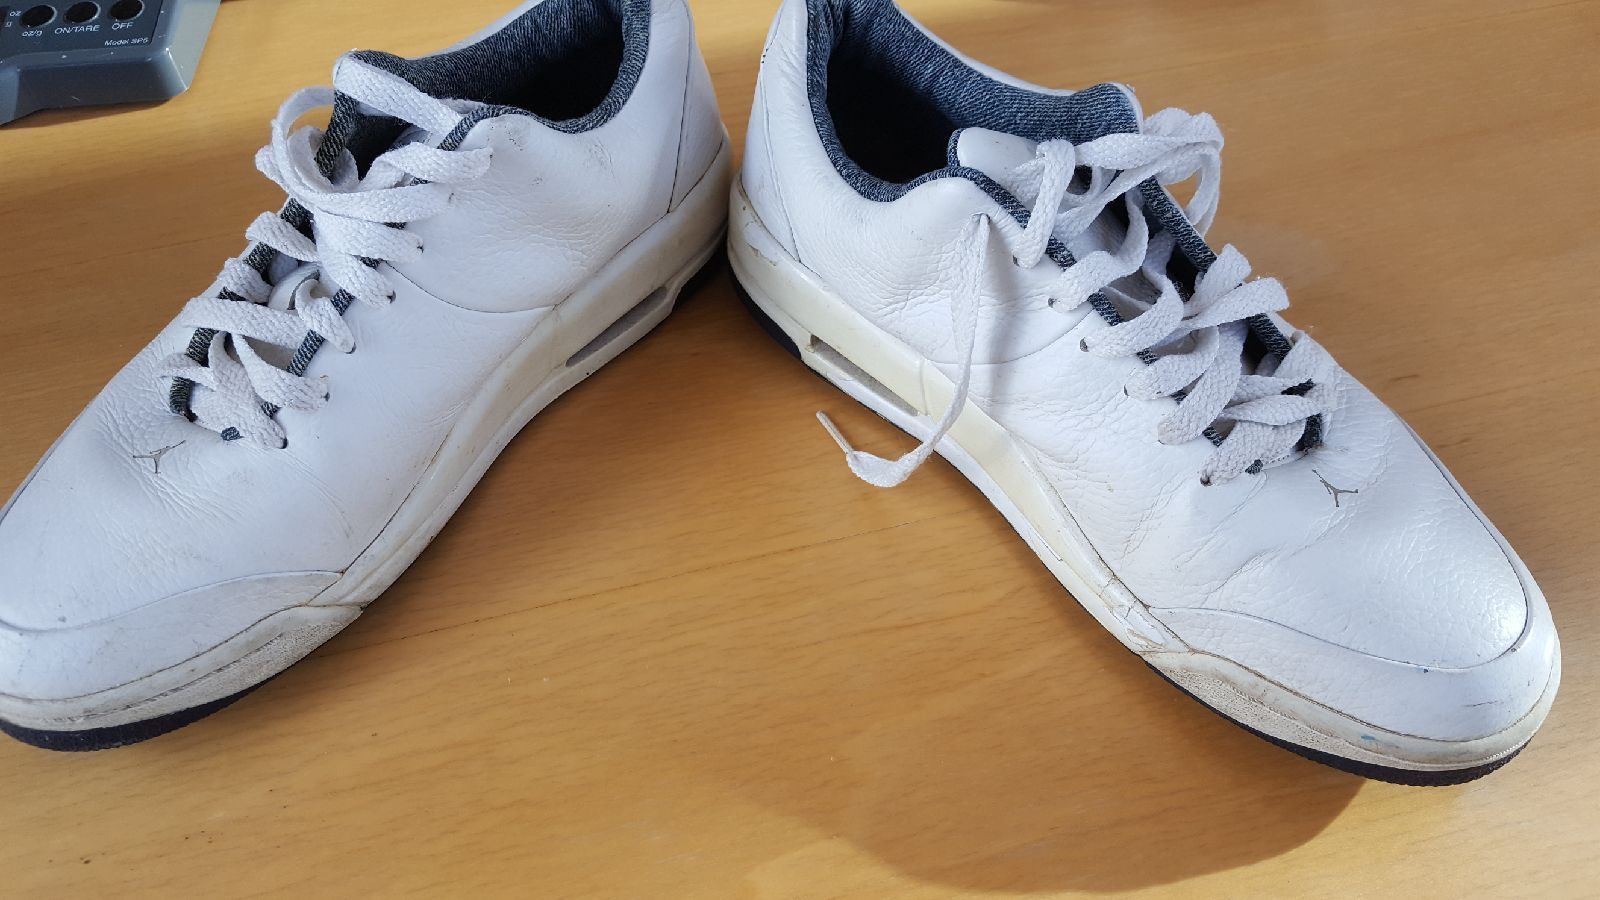 8536123b6b9c40 S l1600. S l1600. Previous. 2006 Mens N ke Air Jordan 23 Classic White  Leather Shoes Size 8.5 313480- · 2006 ...